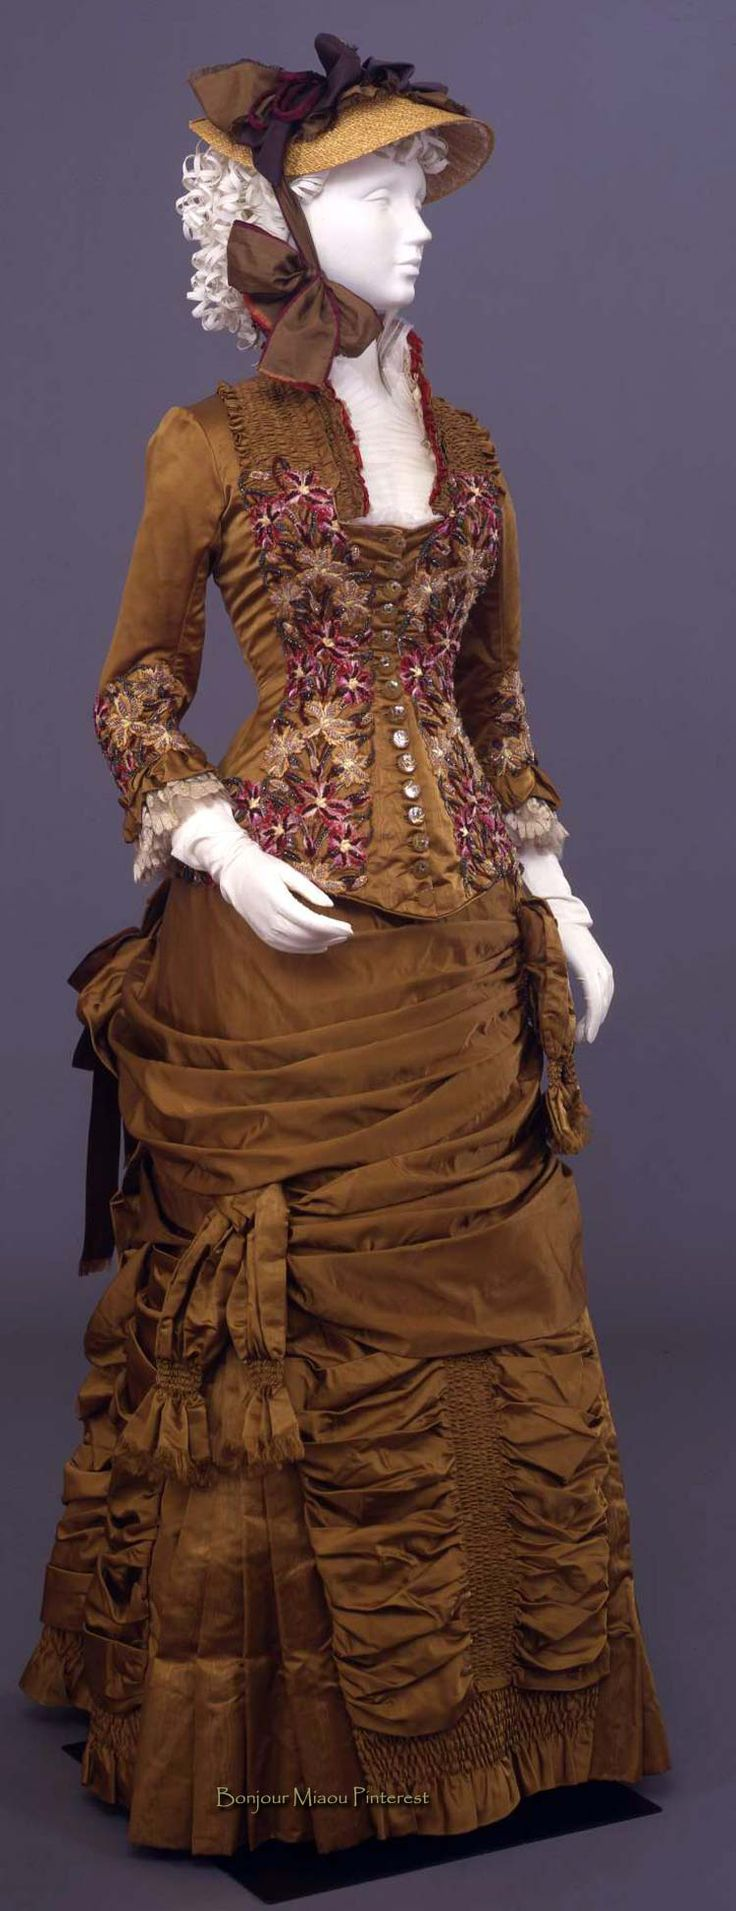 "Two-piece ensemble, Giabbani, Florence, ca. 1881. Ocher yellow silk satin and moiré embroidered in multicolored silk and turquoise beads and trimmed with organza ruffles and blonde lace. Closes with 15 glass buttons. ""Cloche""-type skirt. Costume Gallery of Palazzo Pitti via Europeana Fashion"